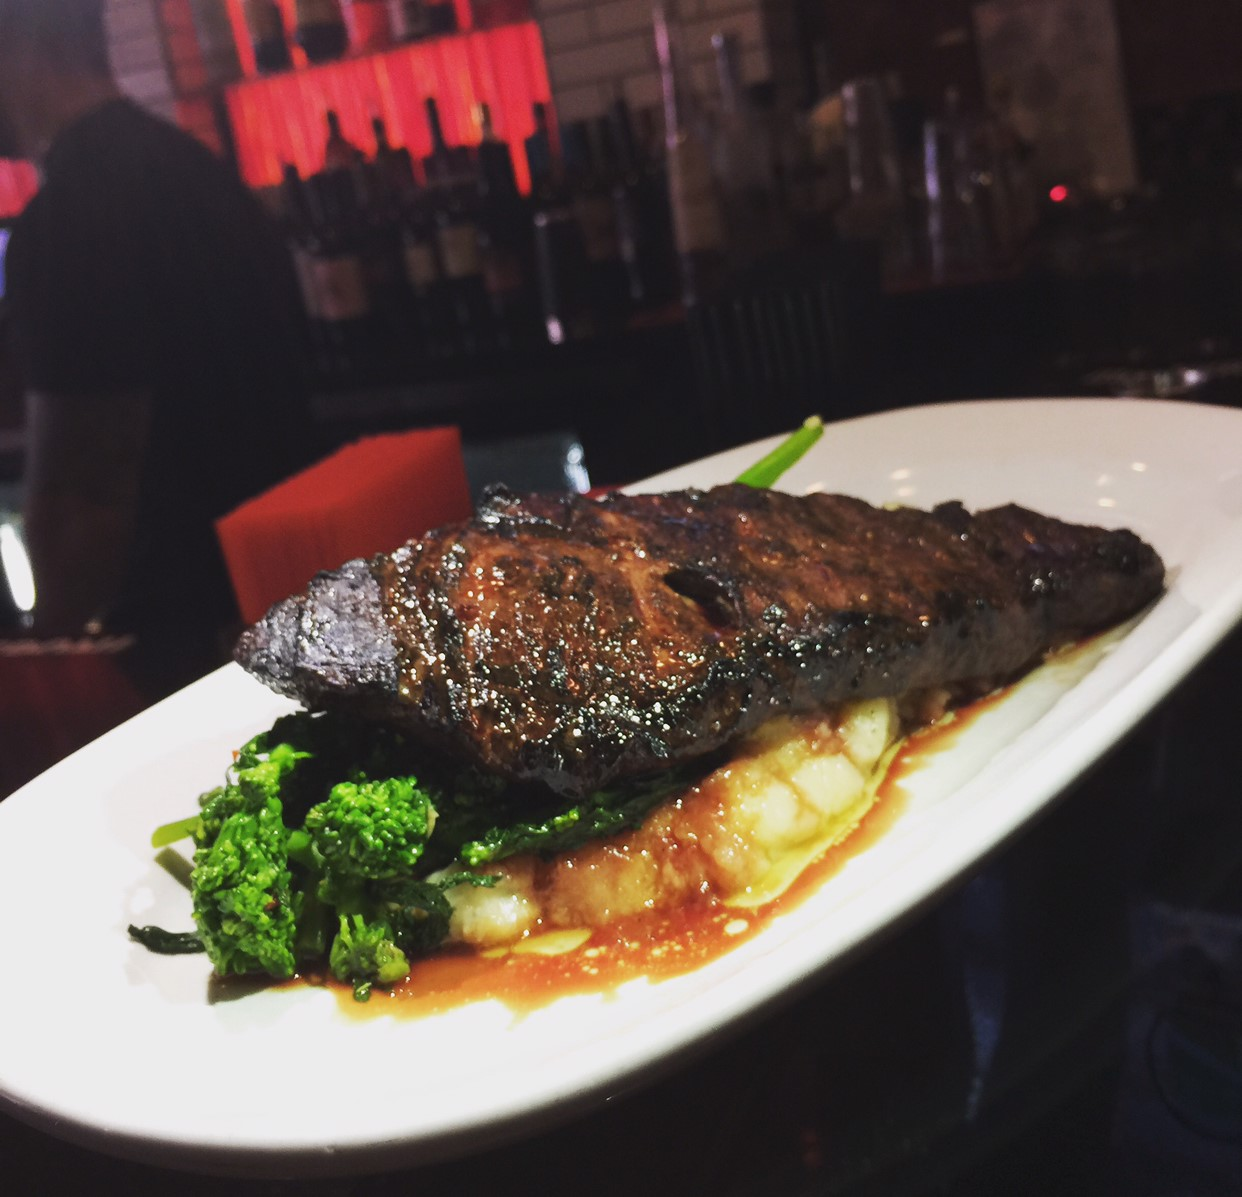 skirt steak with mashed potatoes and broccoli rabe